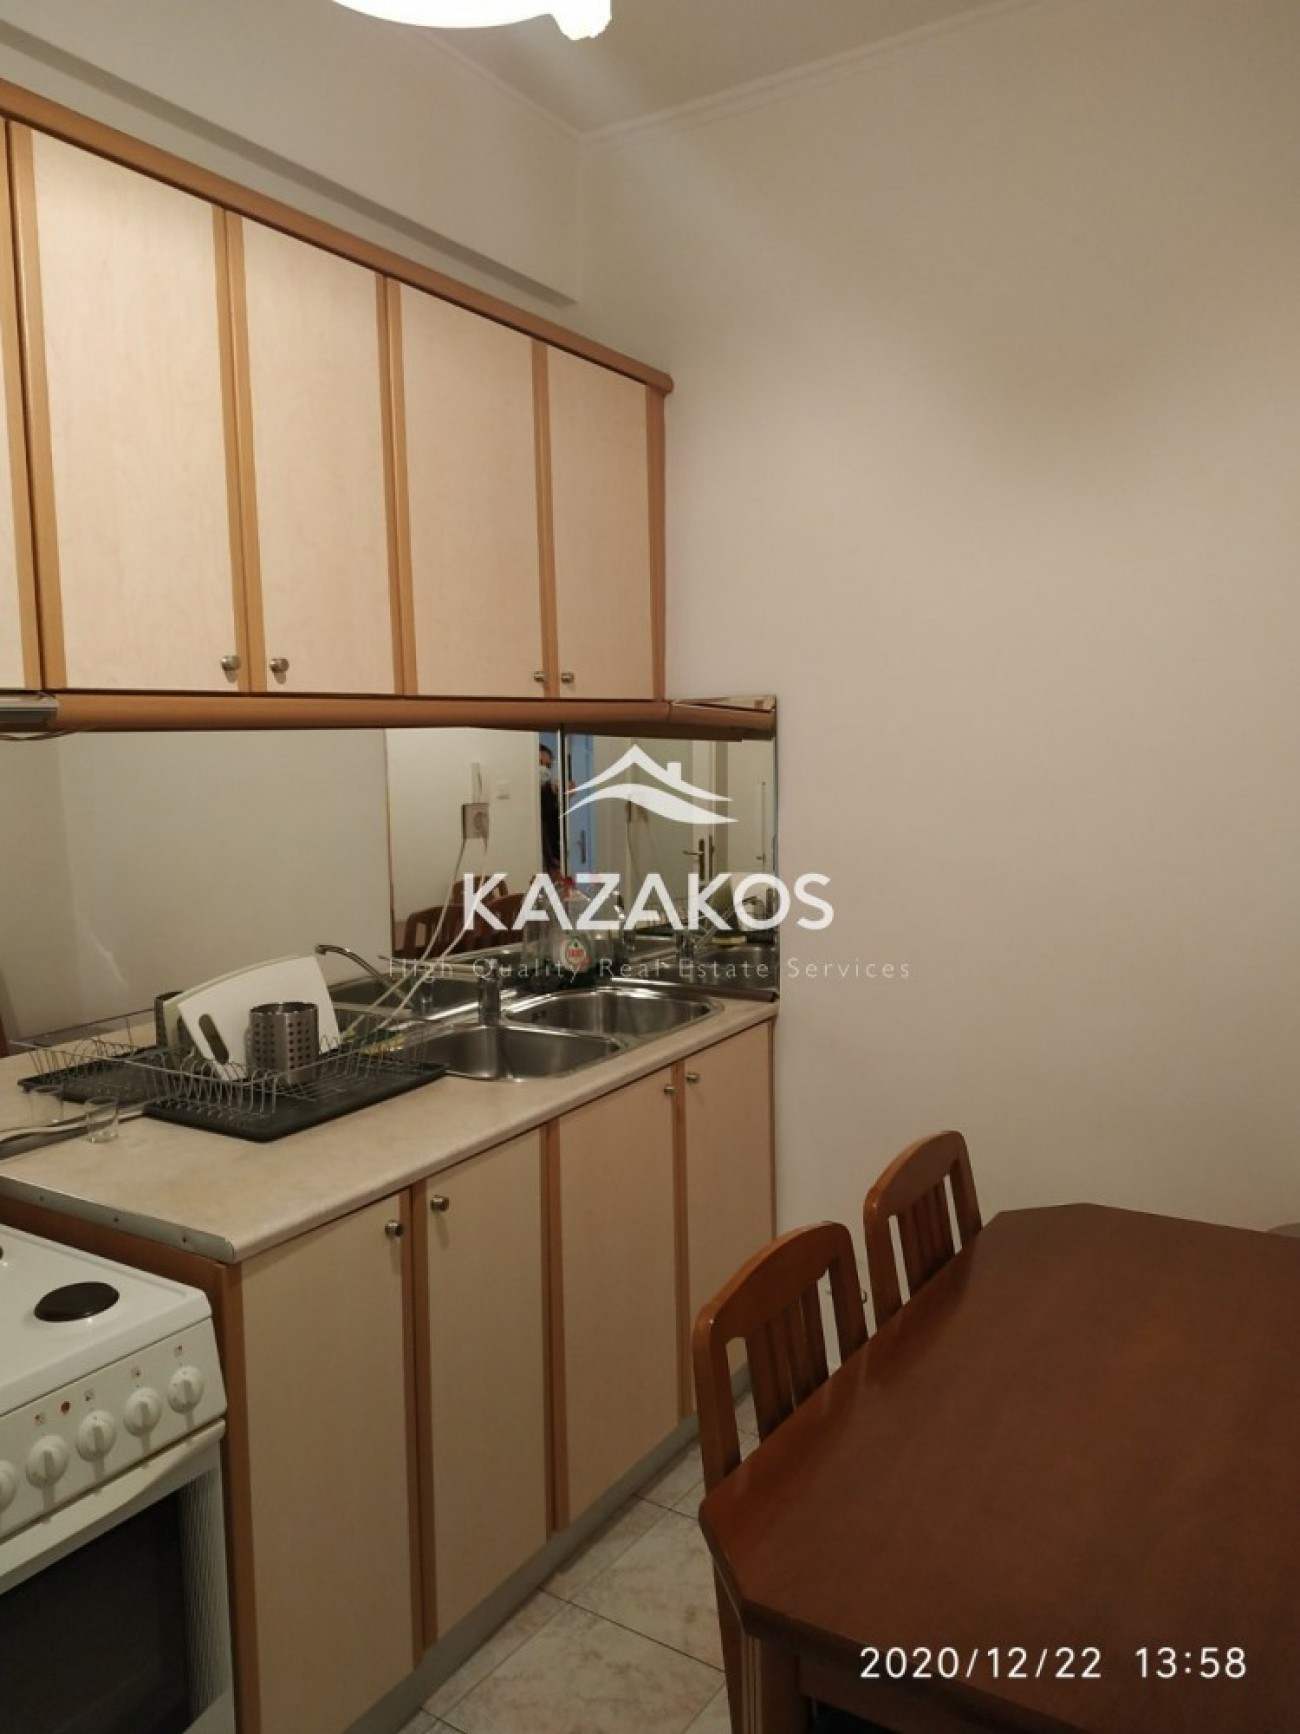 Apartment for Rent in Ilisia, Athens City Center, Greece